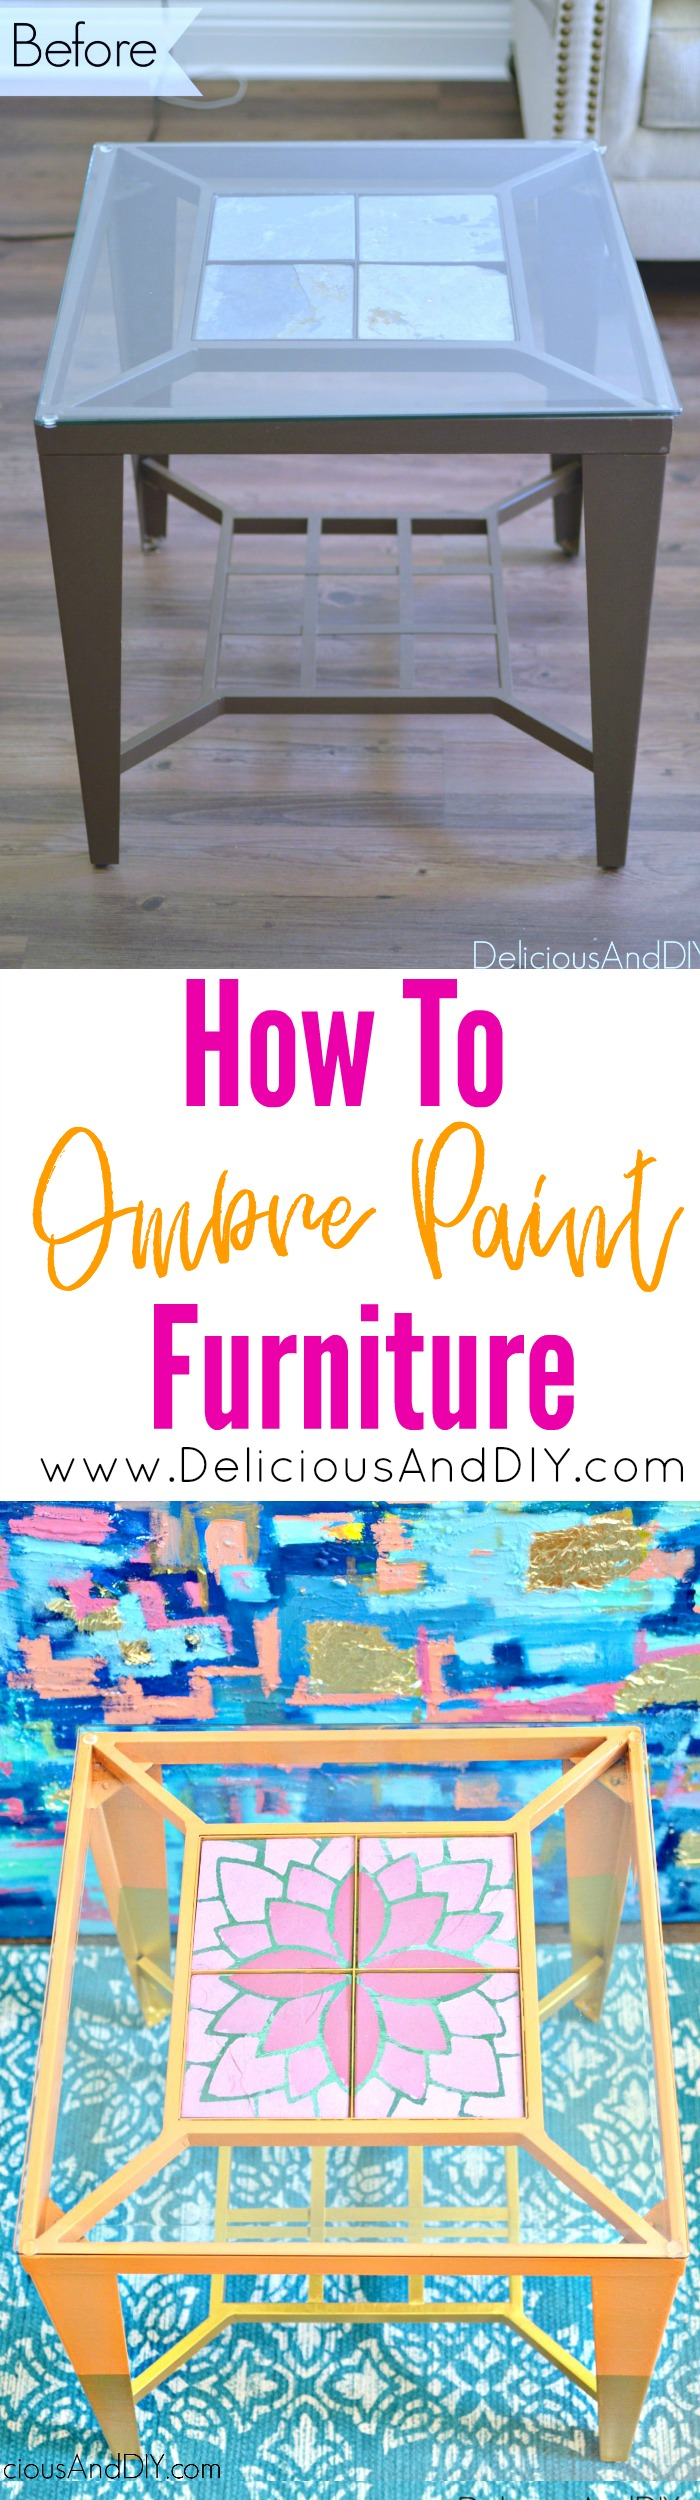 Refinished End Tables| Home Decor| Ombre Flowers| Gold Dipped Legs| Side Table Ideas| Painted Furniture| Chalk Finish Furniture| DIY Crafts||Home Decor| End Tables Makeover| Painted Furniture